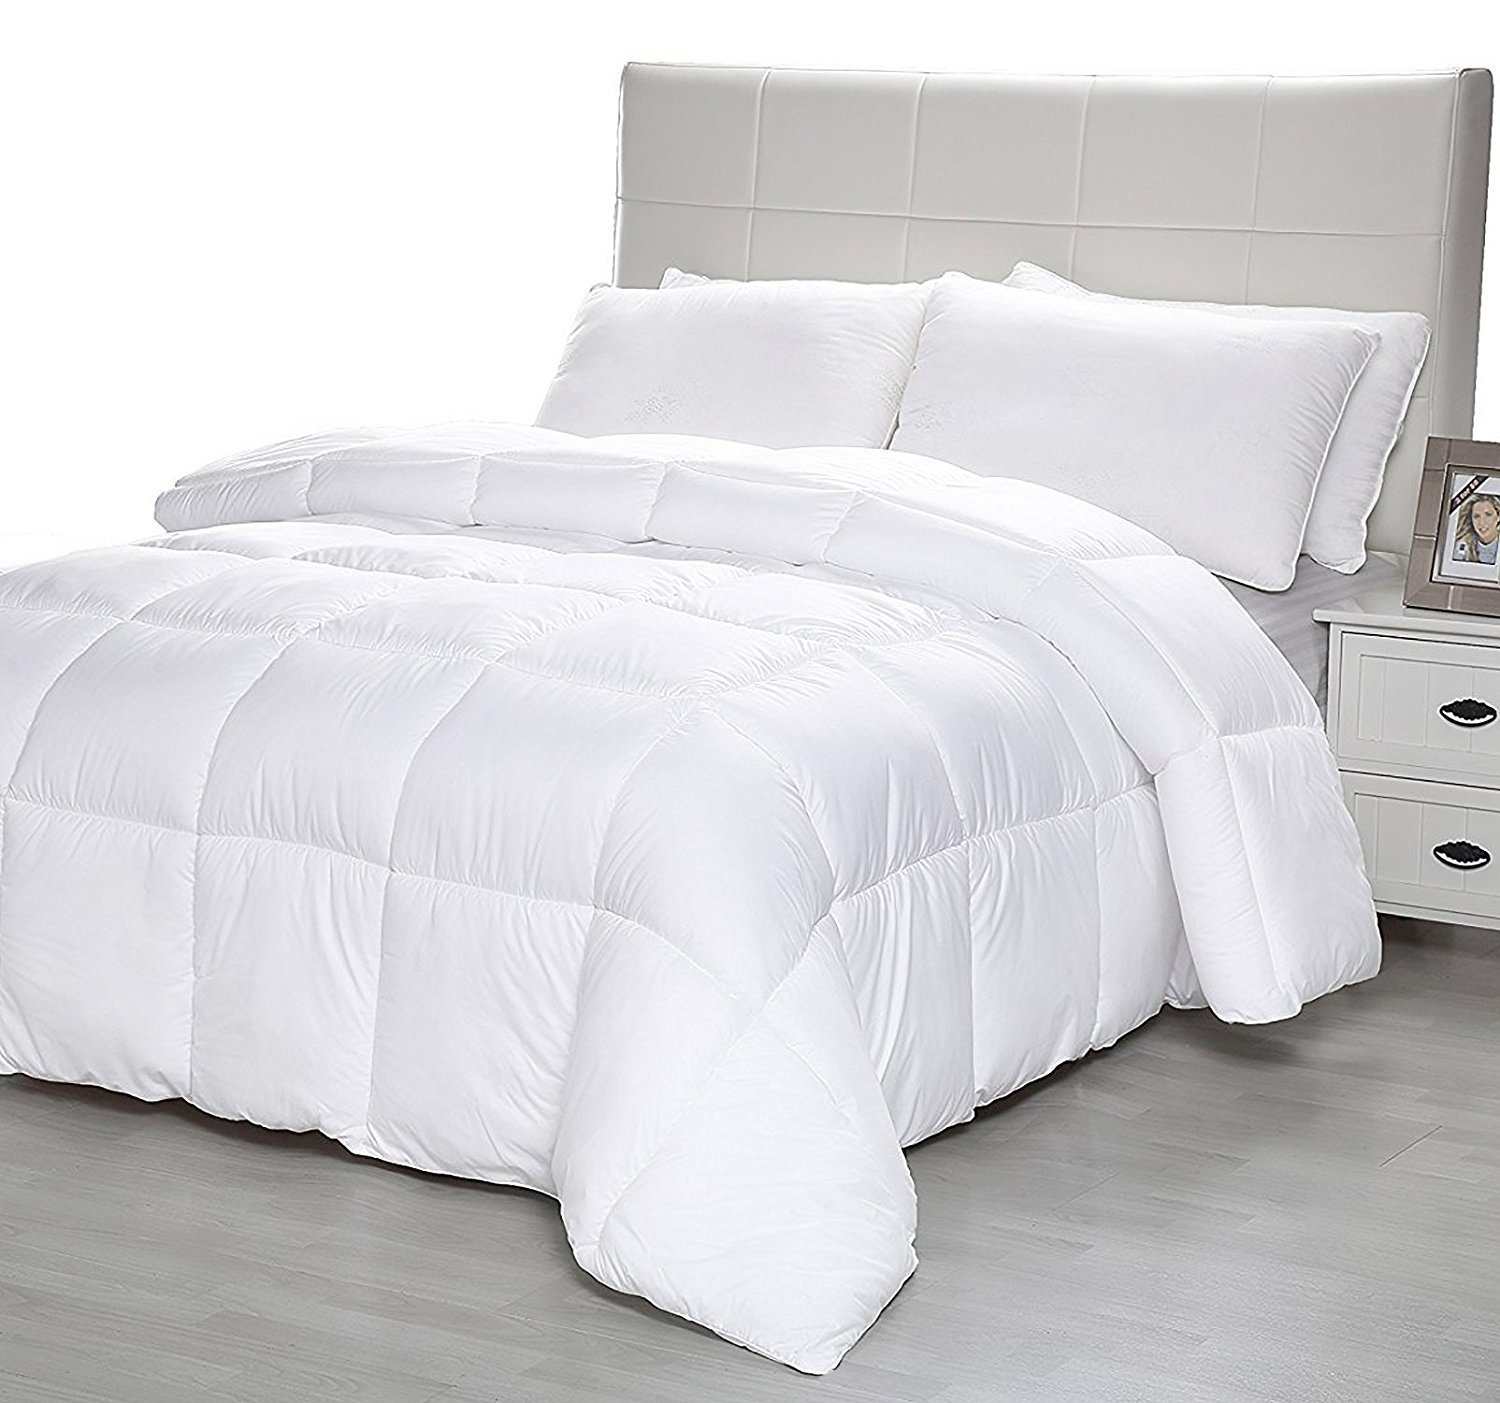 D & G THE DUCK AND GOOSE CO Down Alternative Comforter Duvet Plush Microfiber Fill Duvet Insert, Lightweight for All Season, Premium Hotel Quality - Machine Washable - Twin BED-QT-68x86